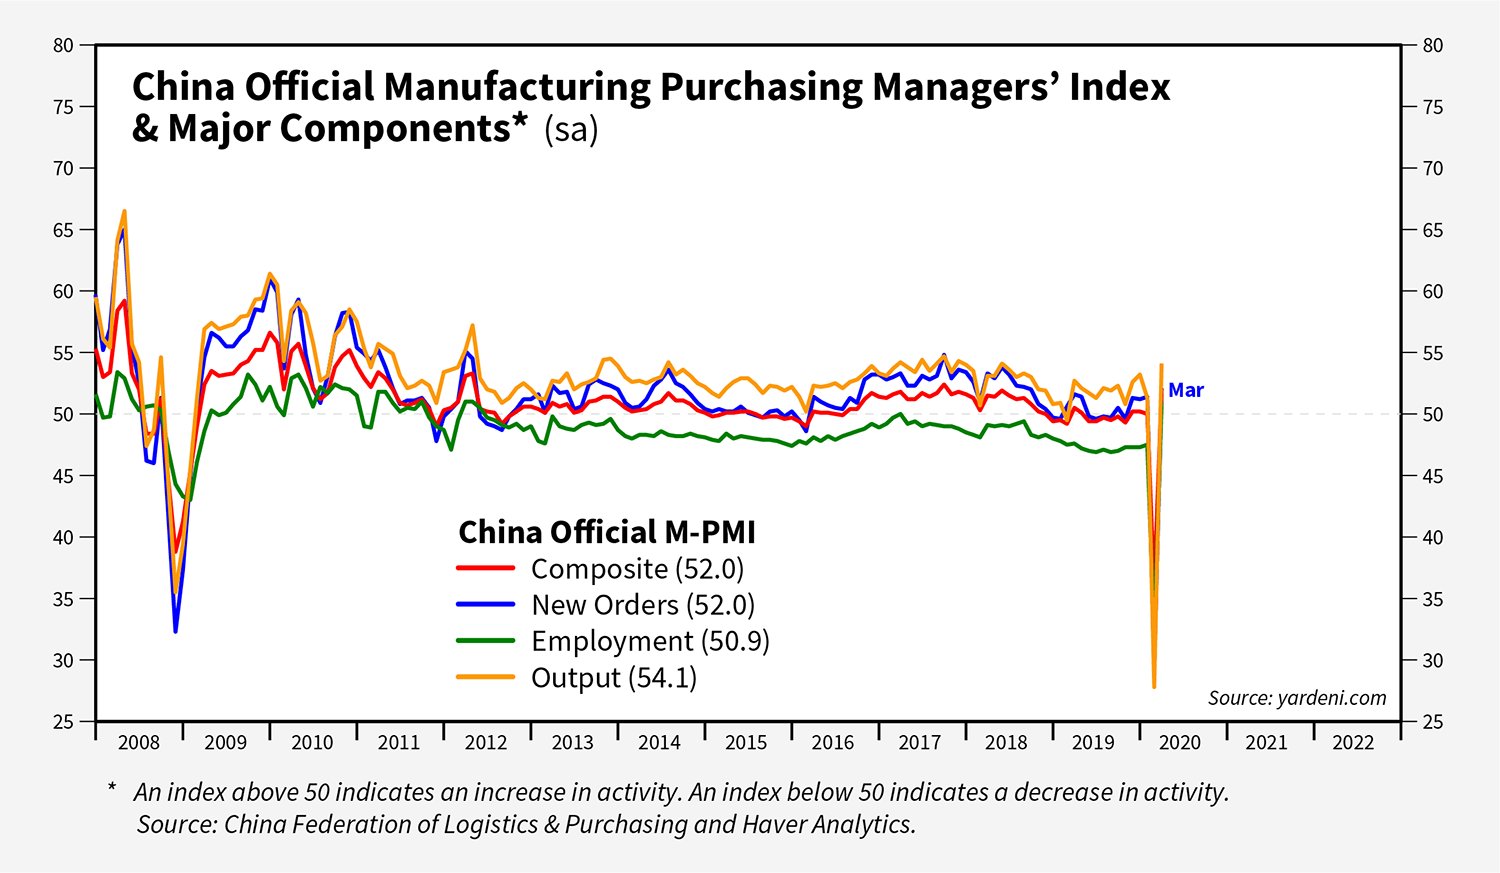 China Official Manufacturing Purchasing Managers' Index & Major Components